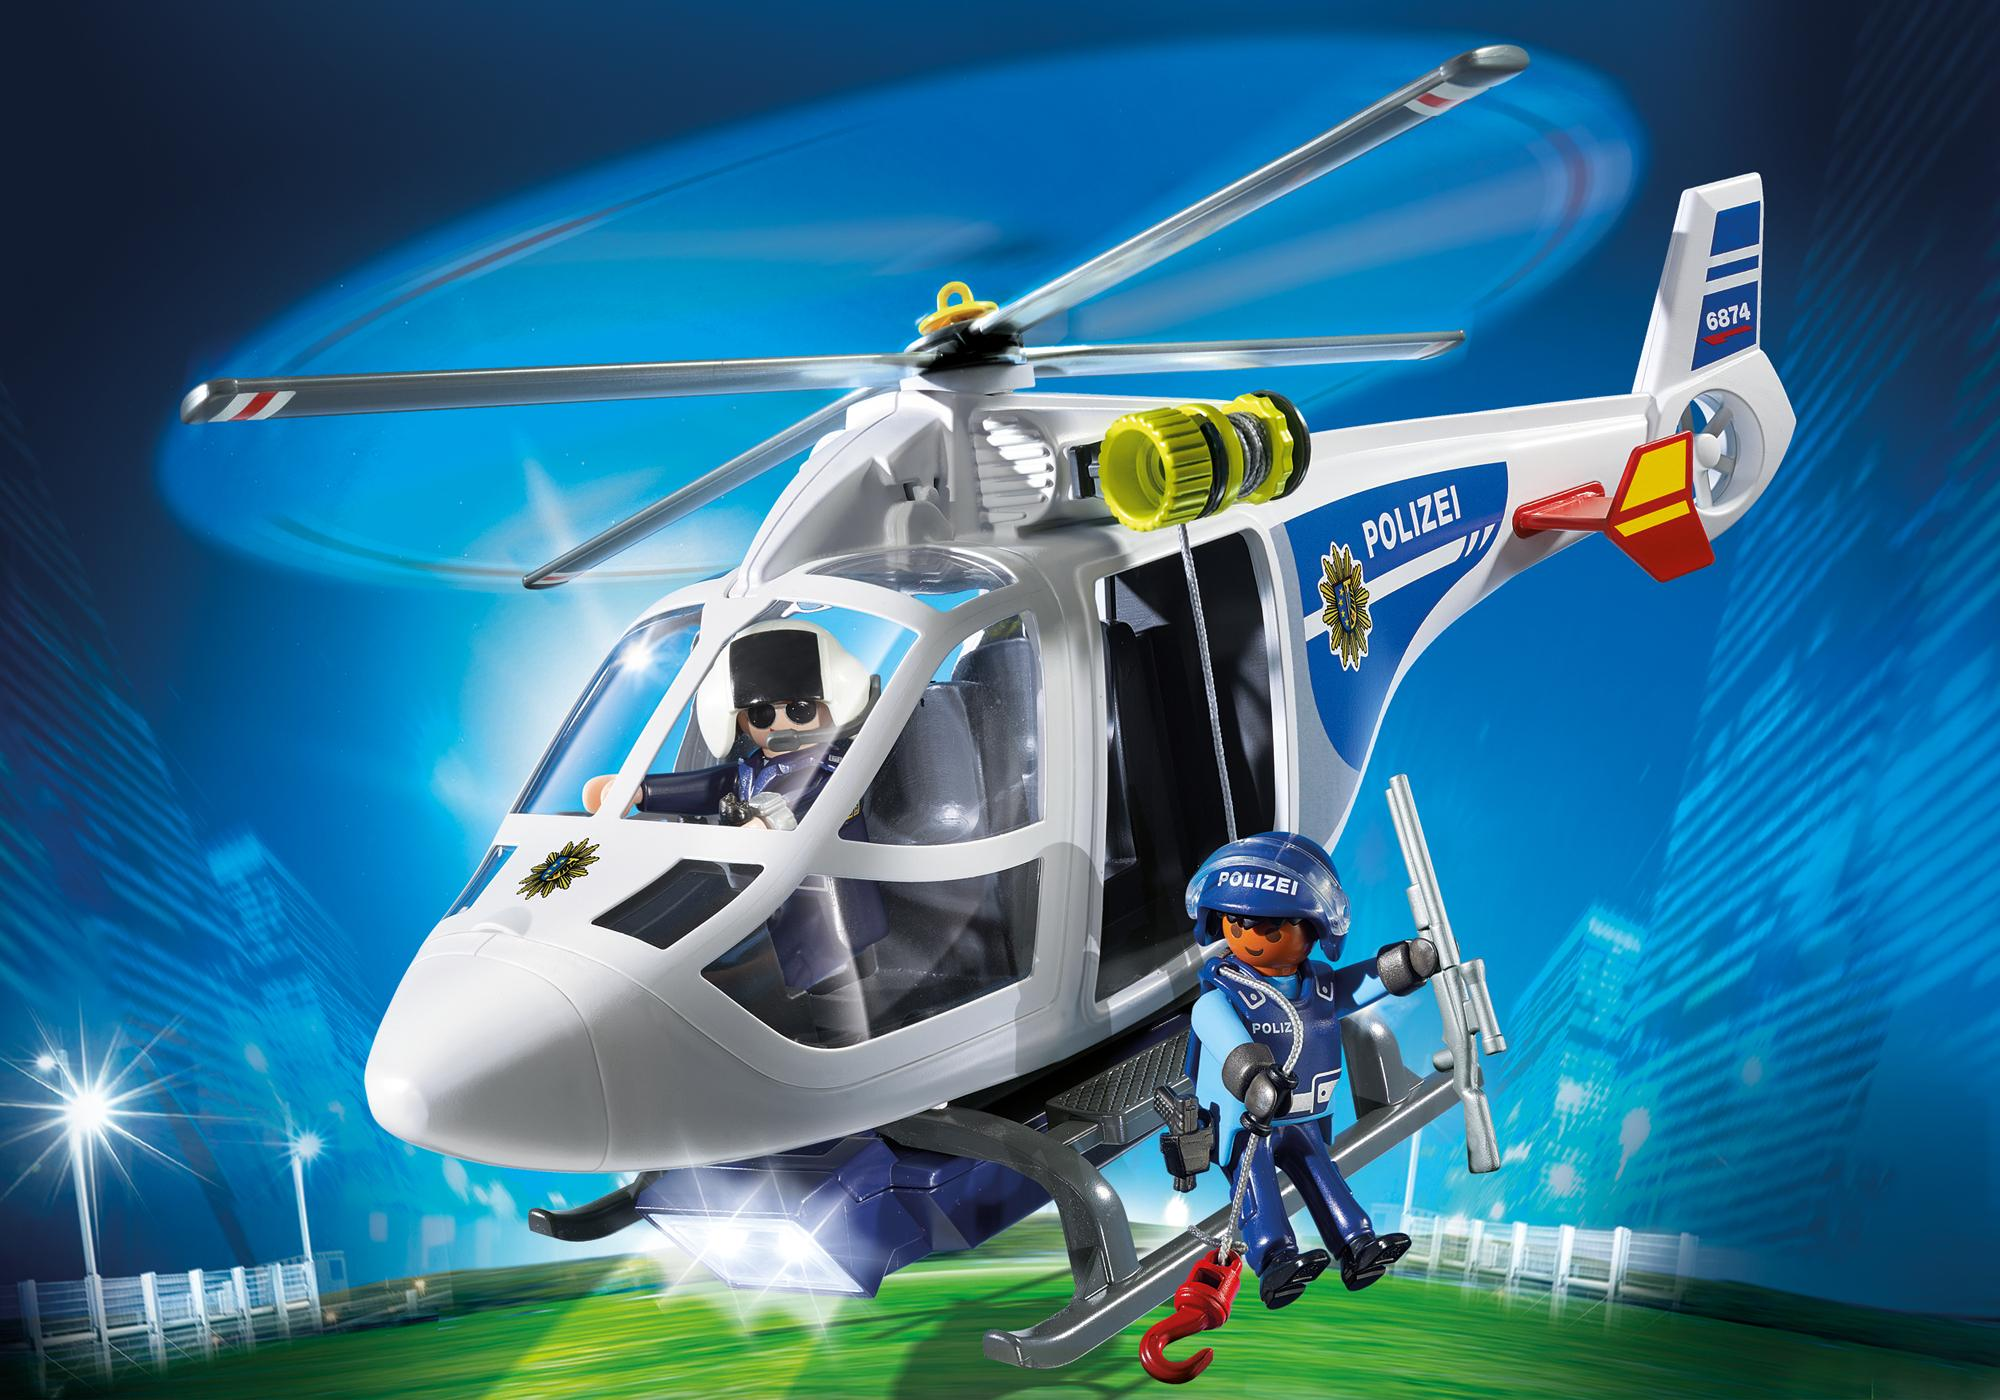 http://media.playmobil.com/i/playmobil/6874_product_detail